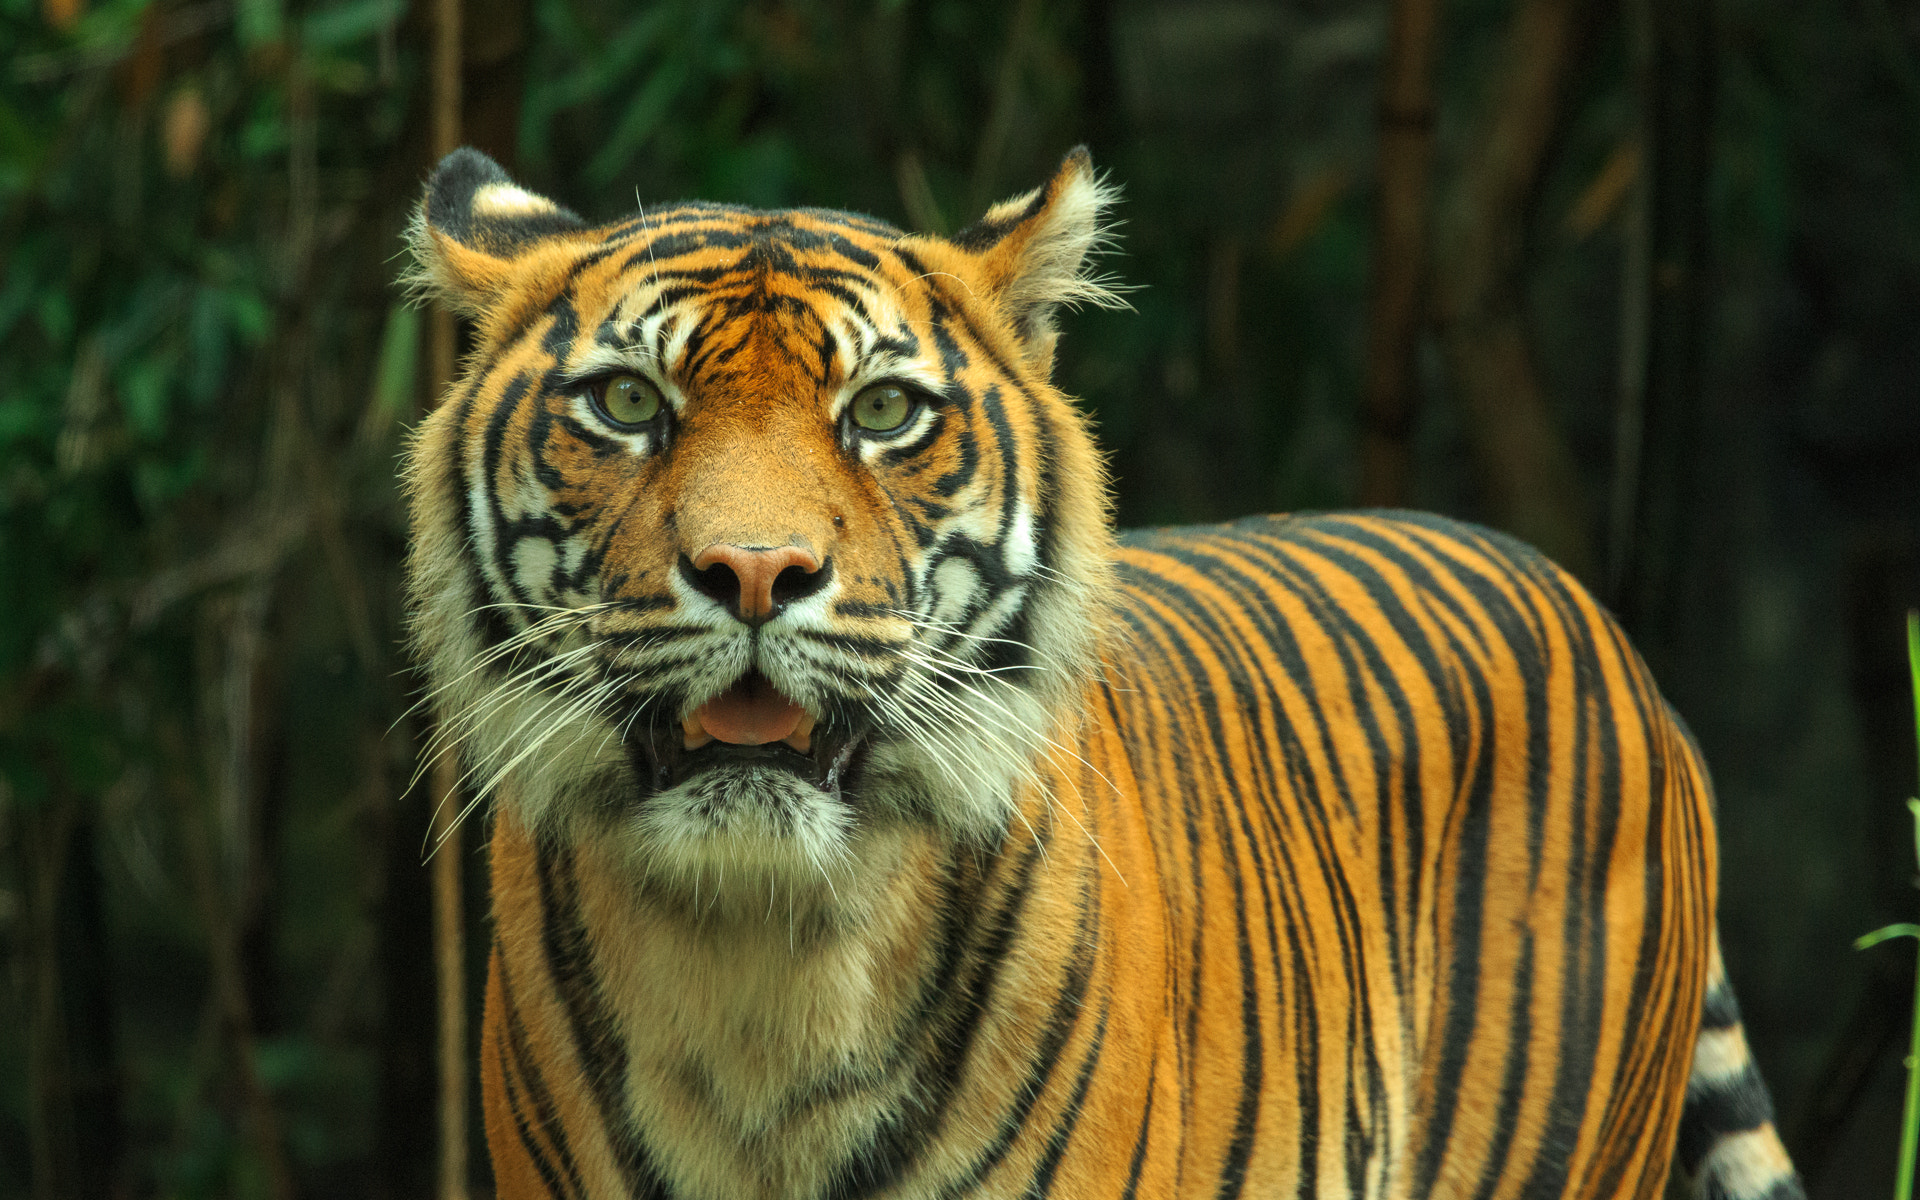 Photograph Tiger #2 by Mark Coker on 500px